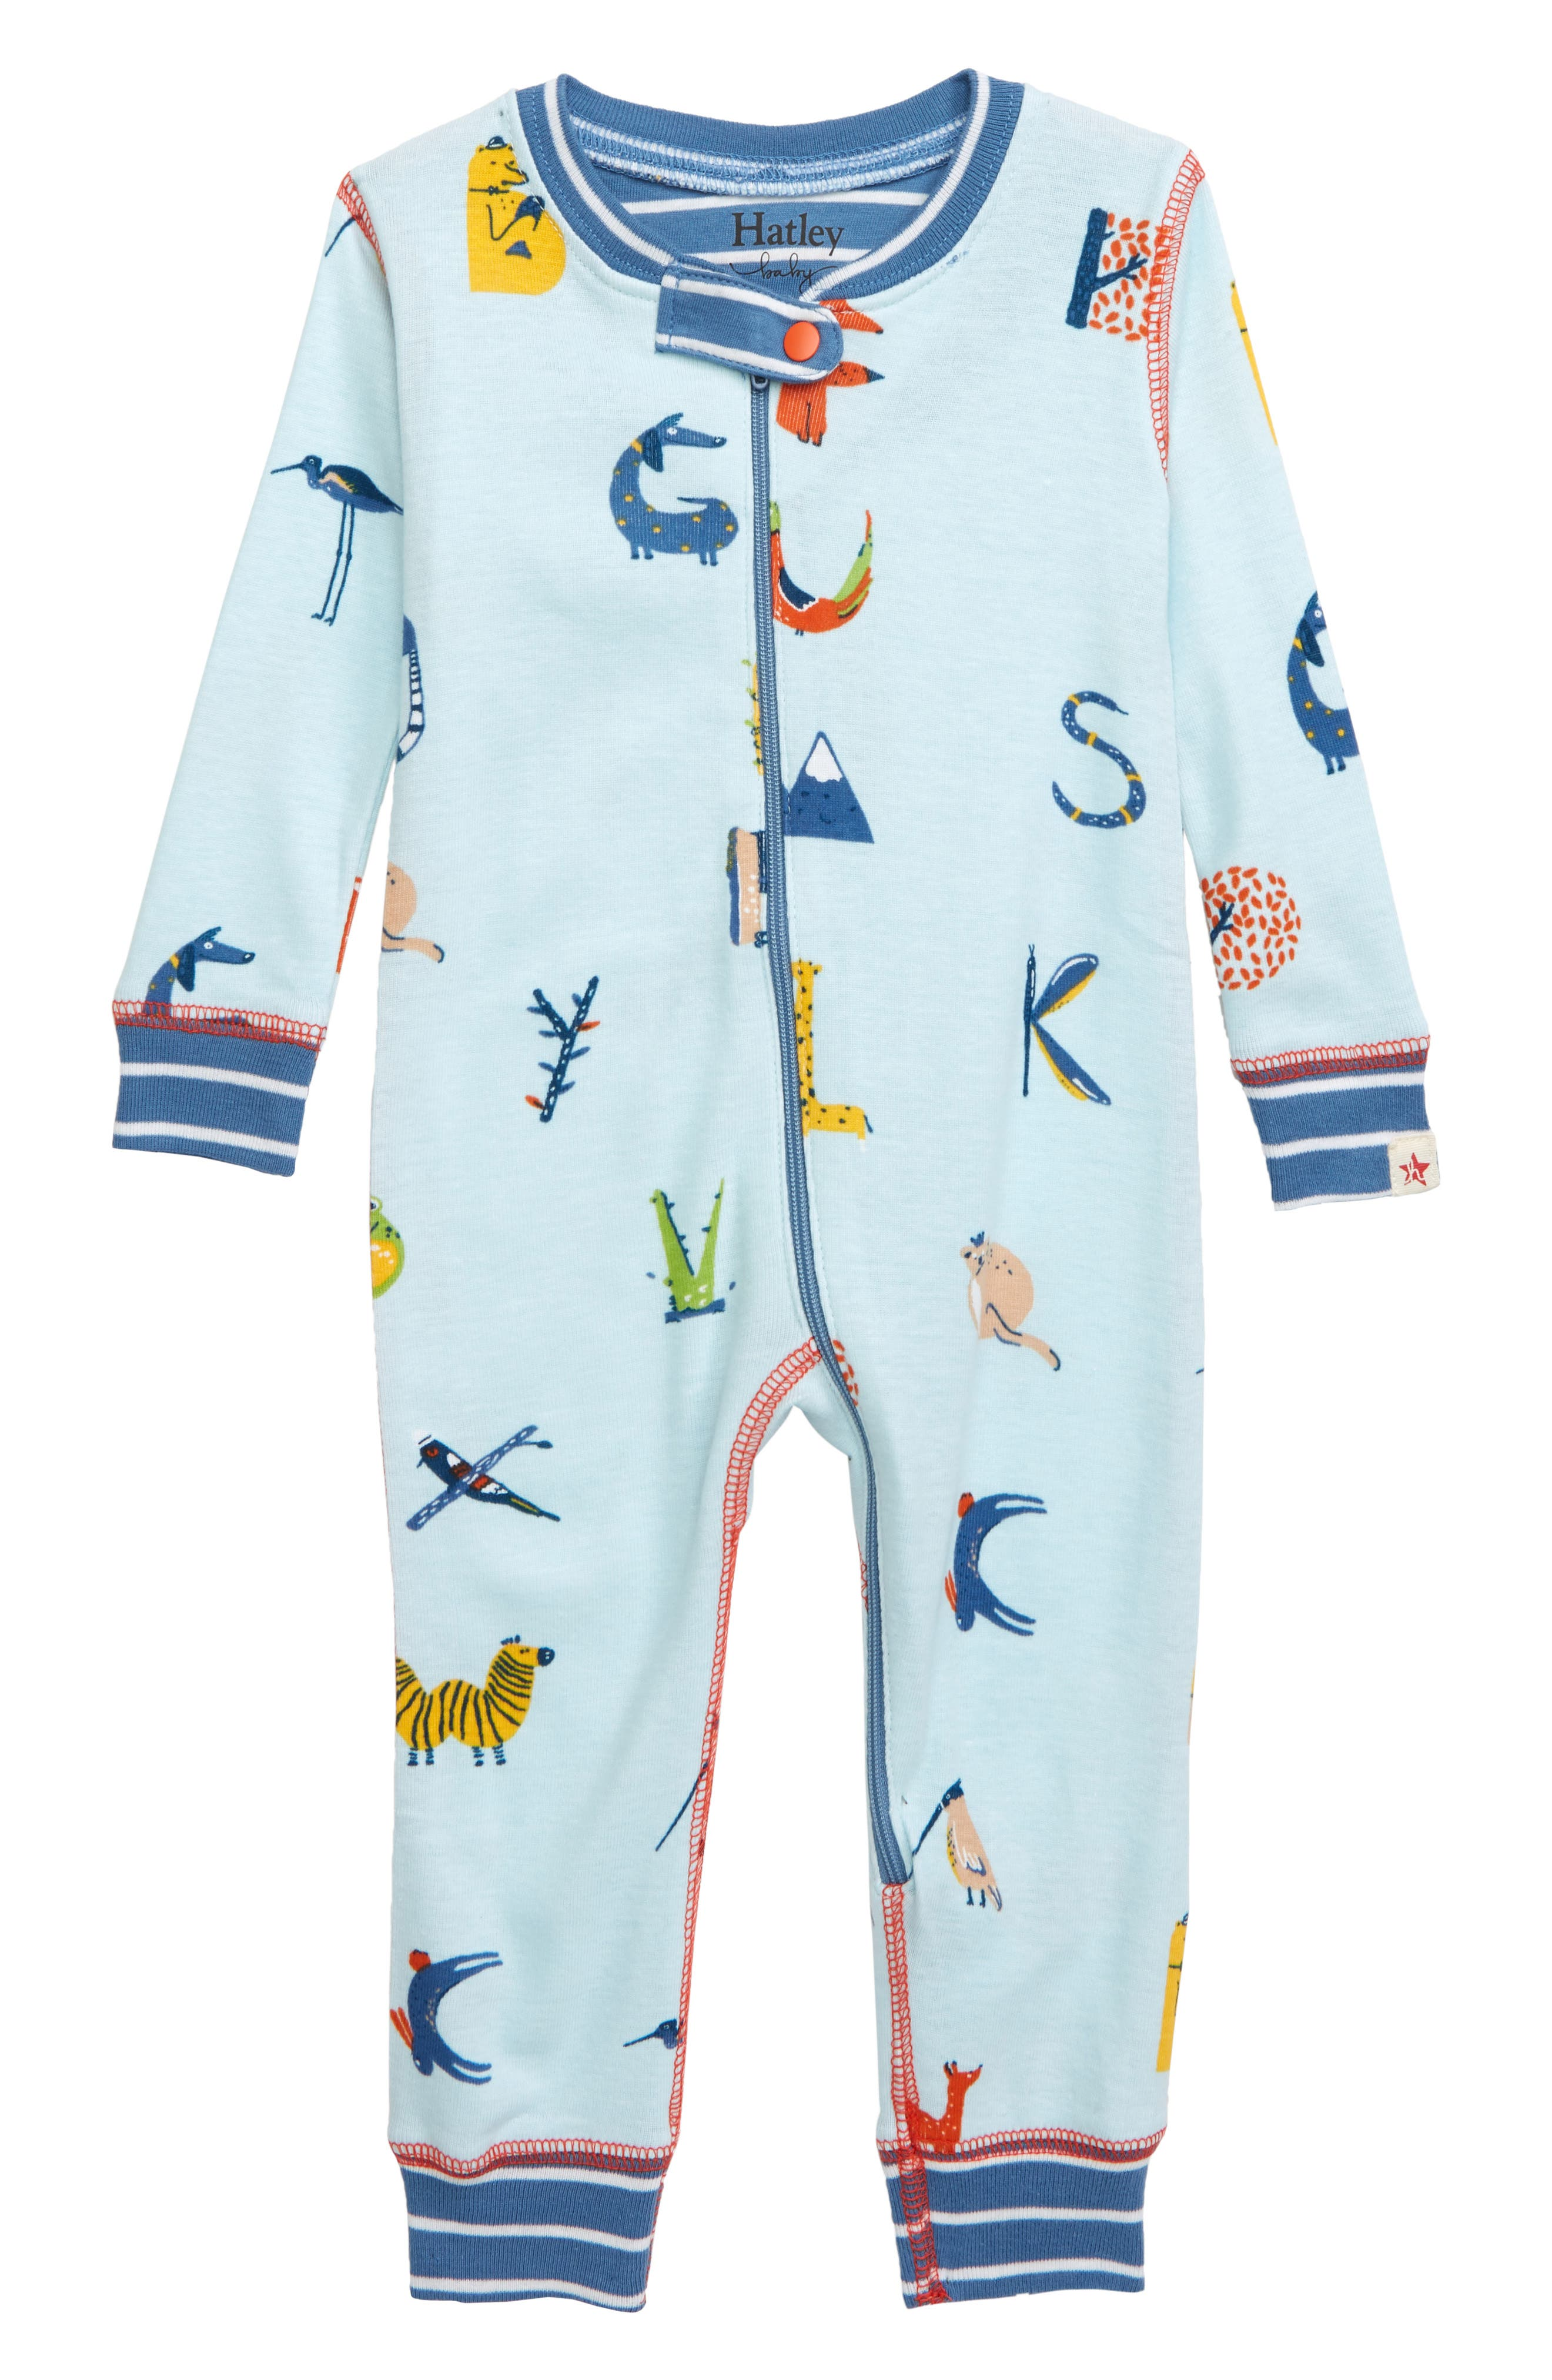 Infant Boys Hatley Alphabet Animals Organic Cotton Fitted OnePiece Pajamas Size 03M  Blue